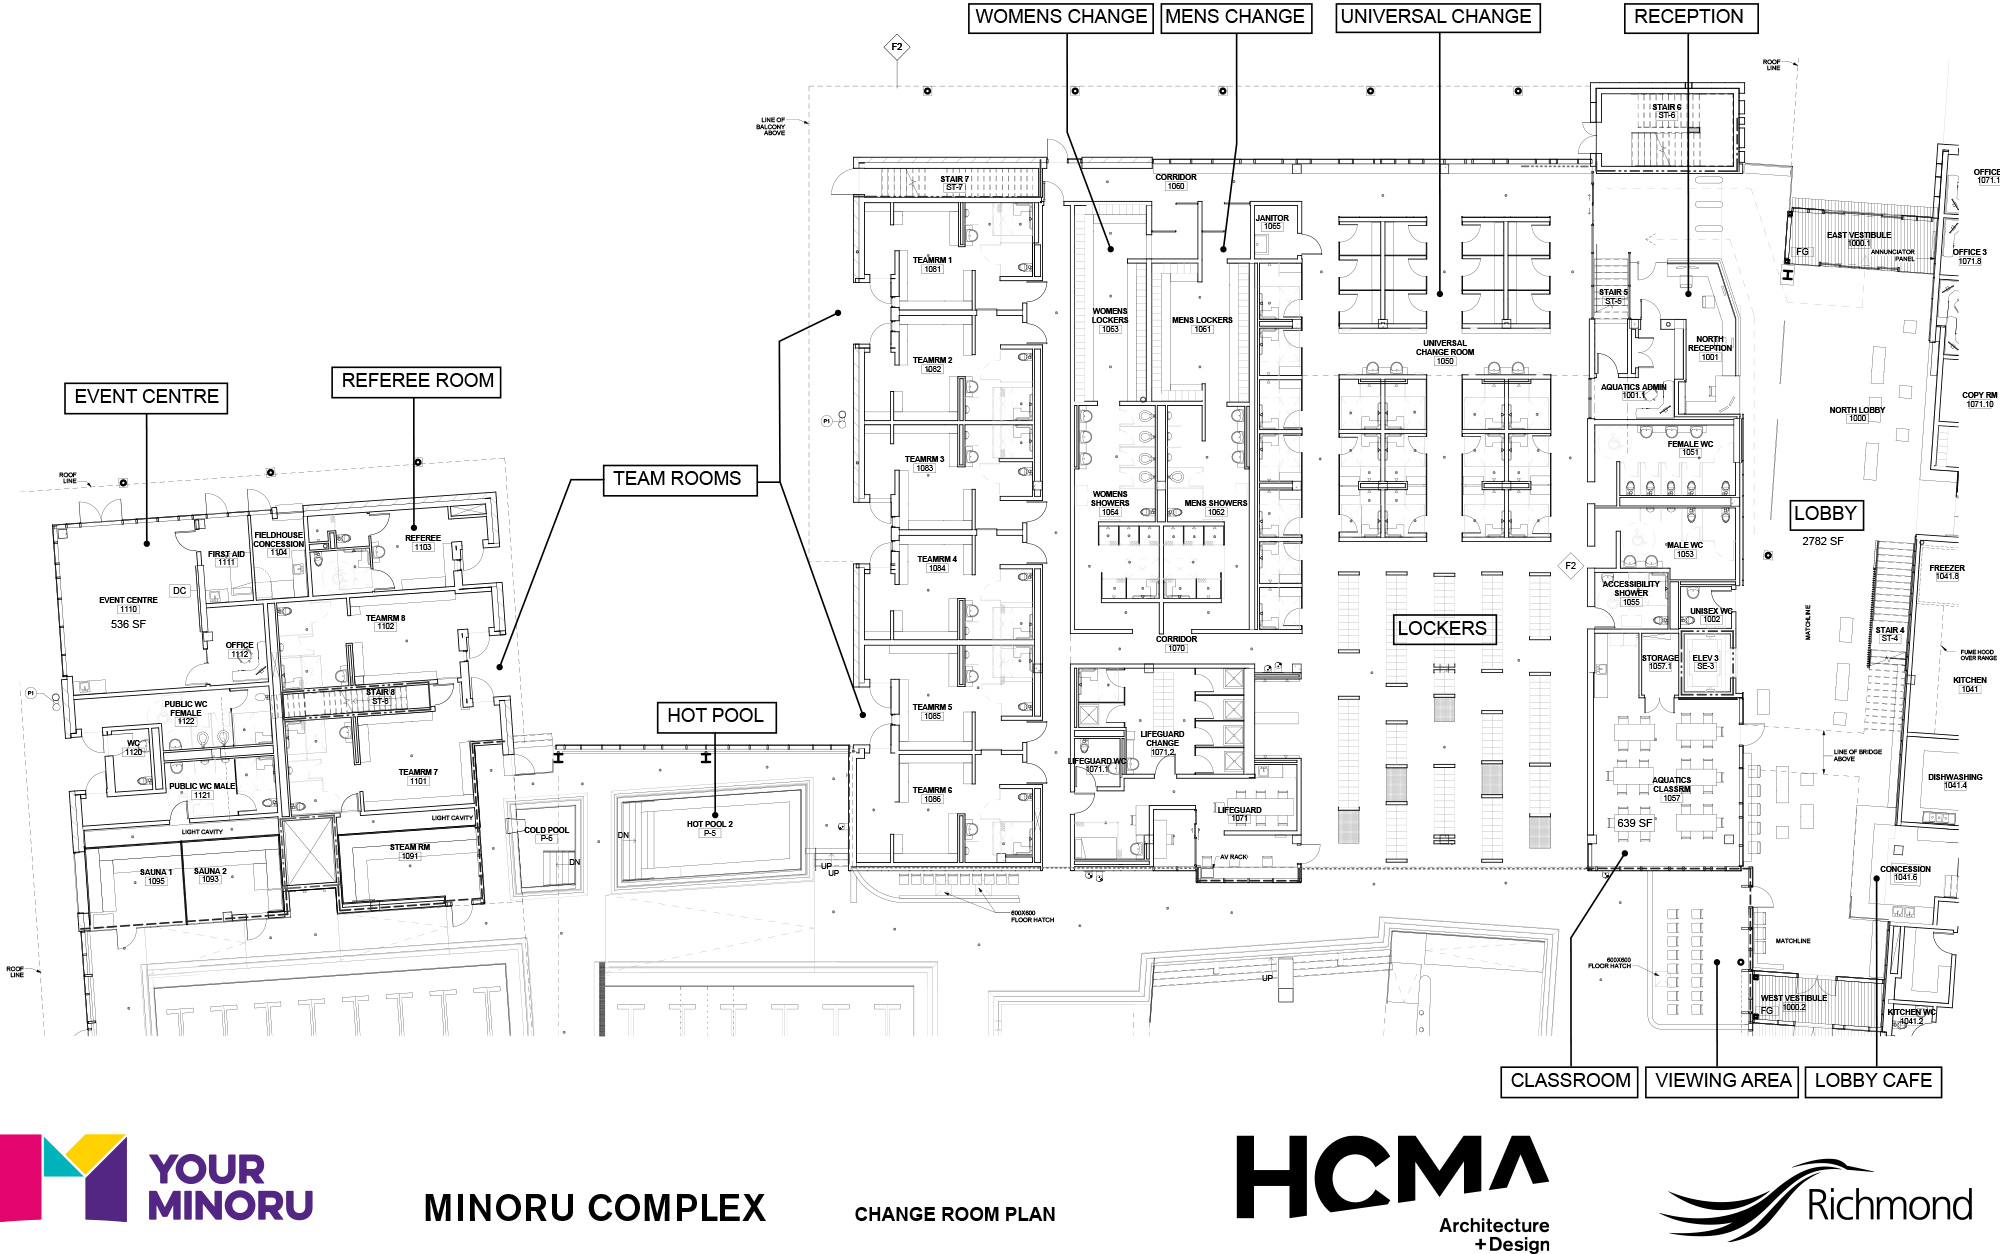 Minoru Complex - Change Room Plan - January 2016